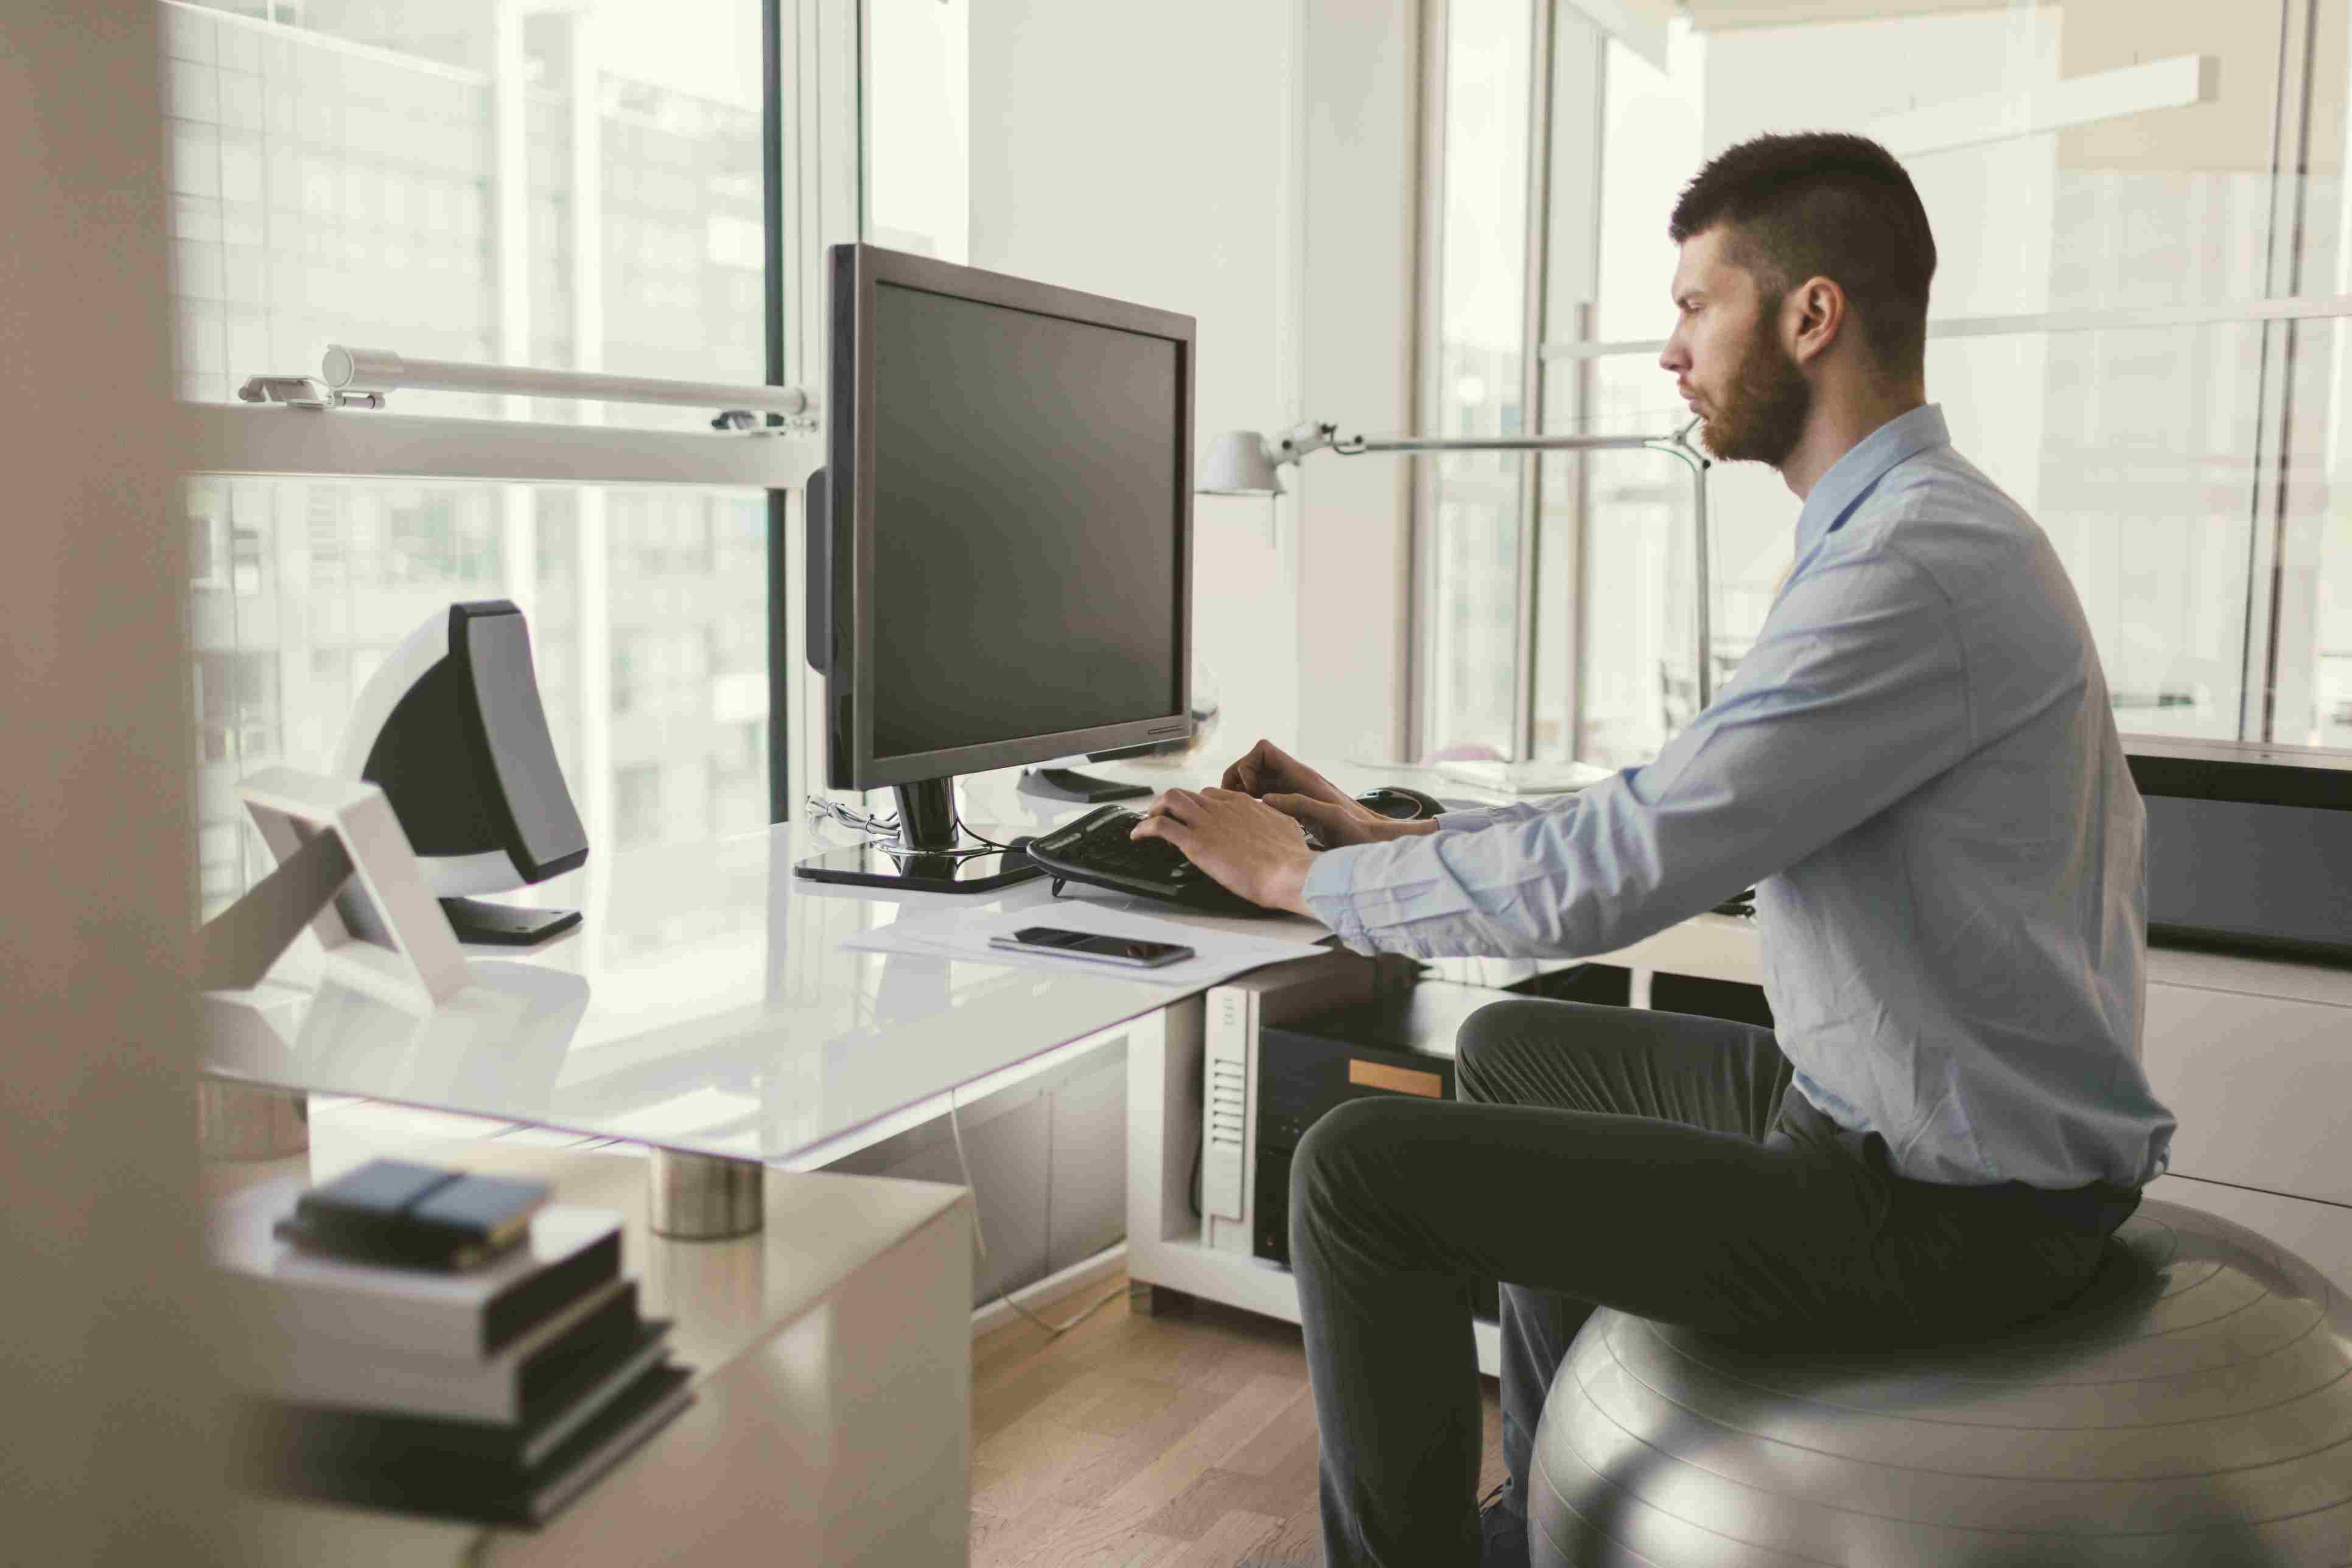 Office Workout Moves You Can Do Right at Your Desk